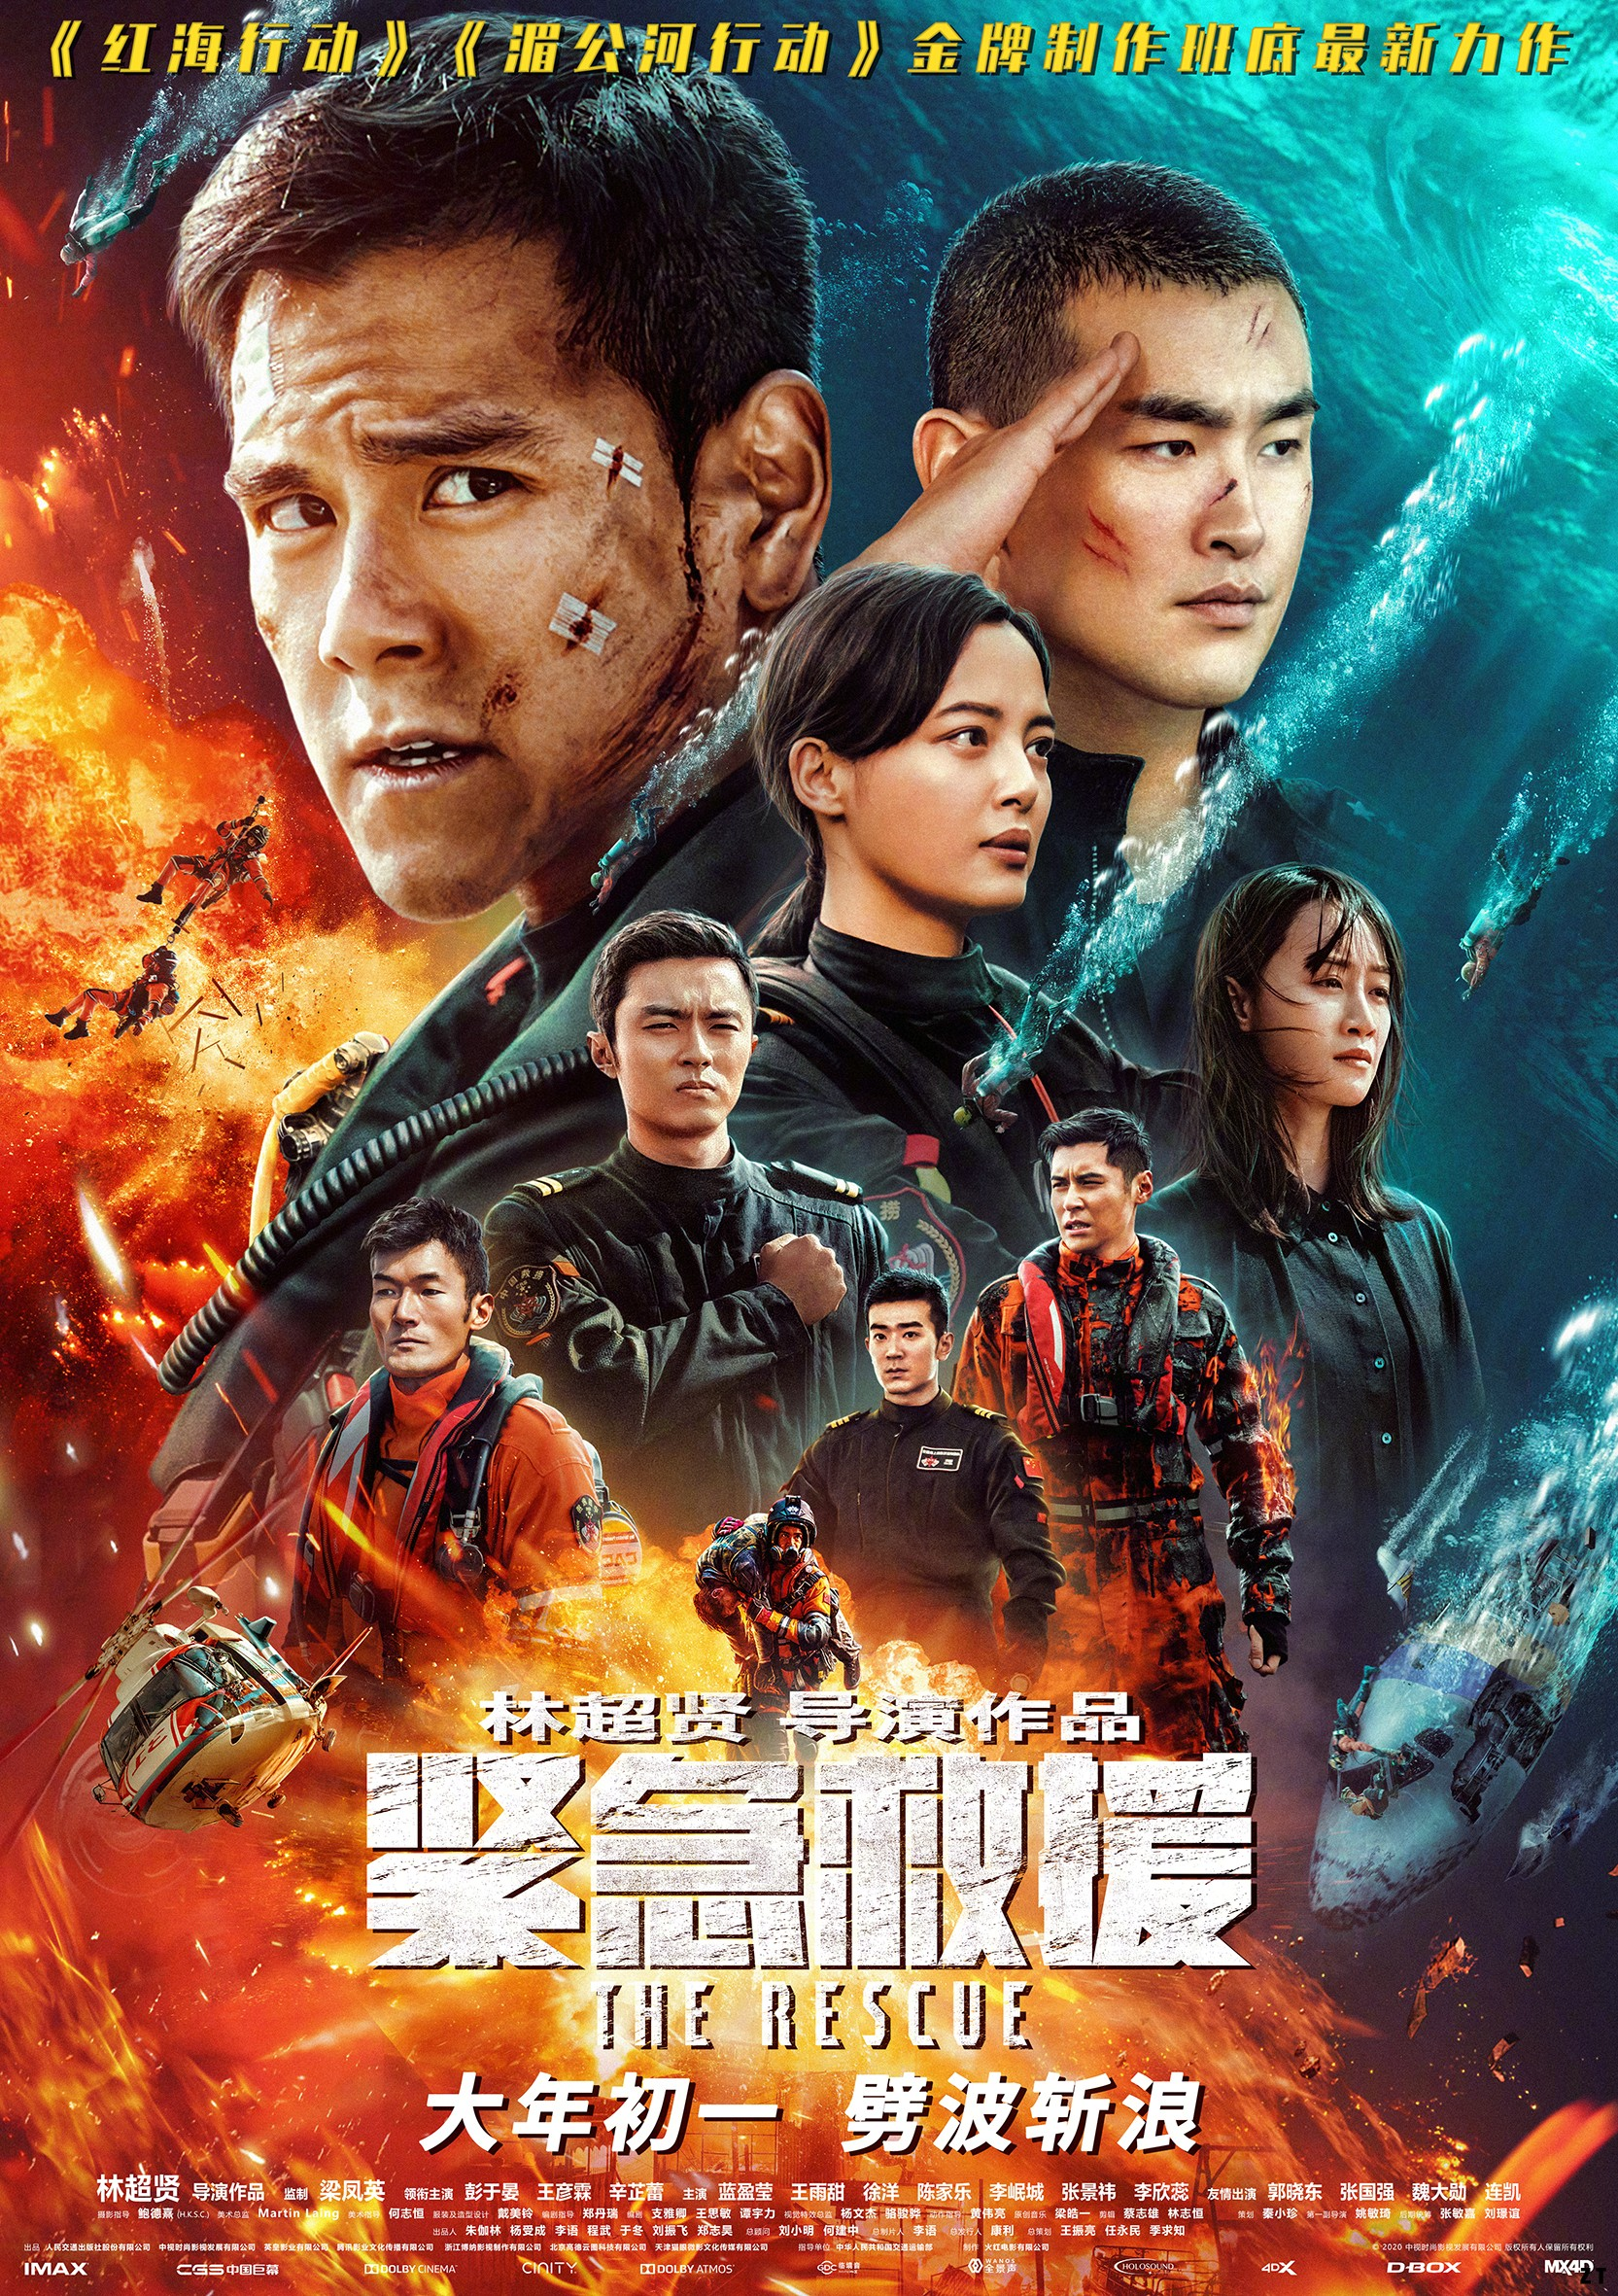 The Rescue VOSTFR HDTS MD 2021